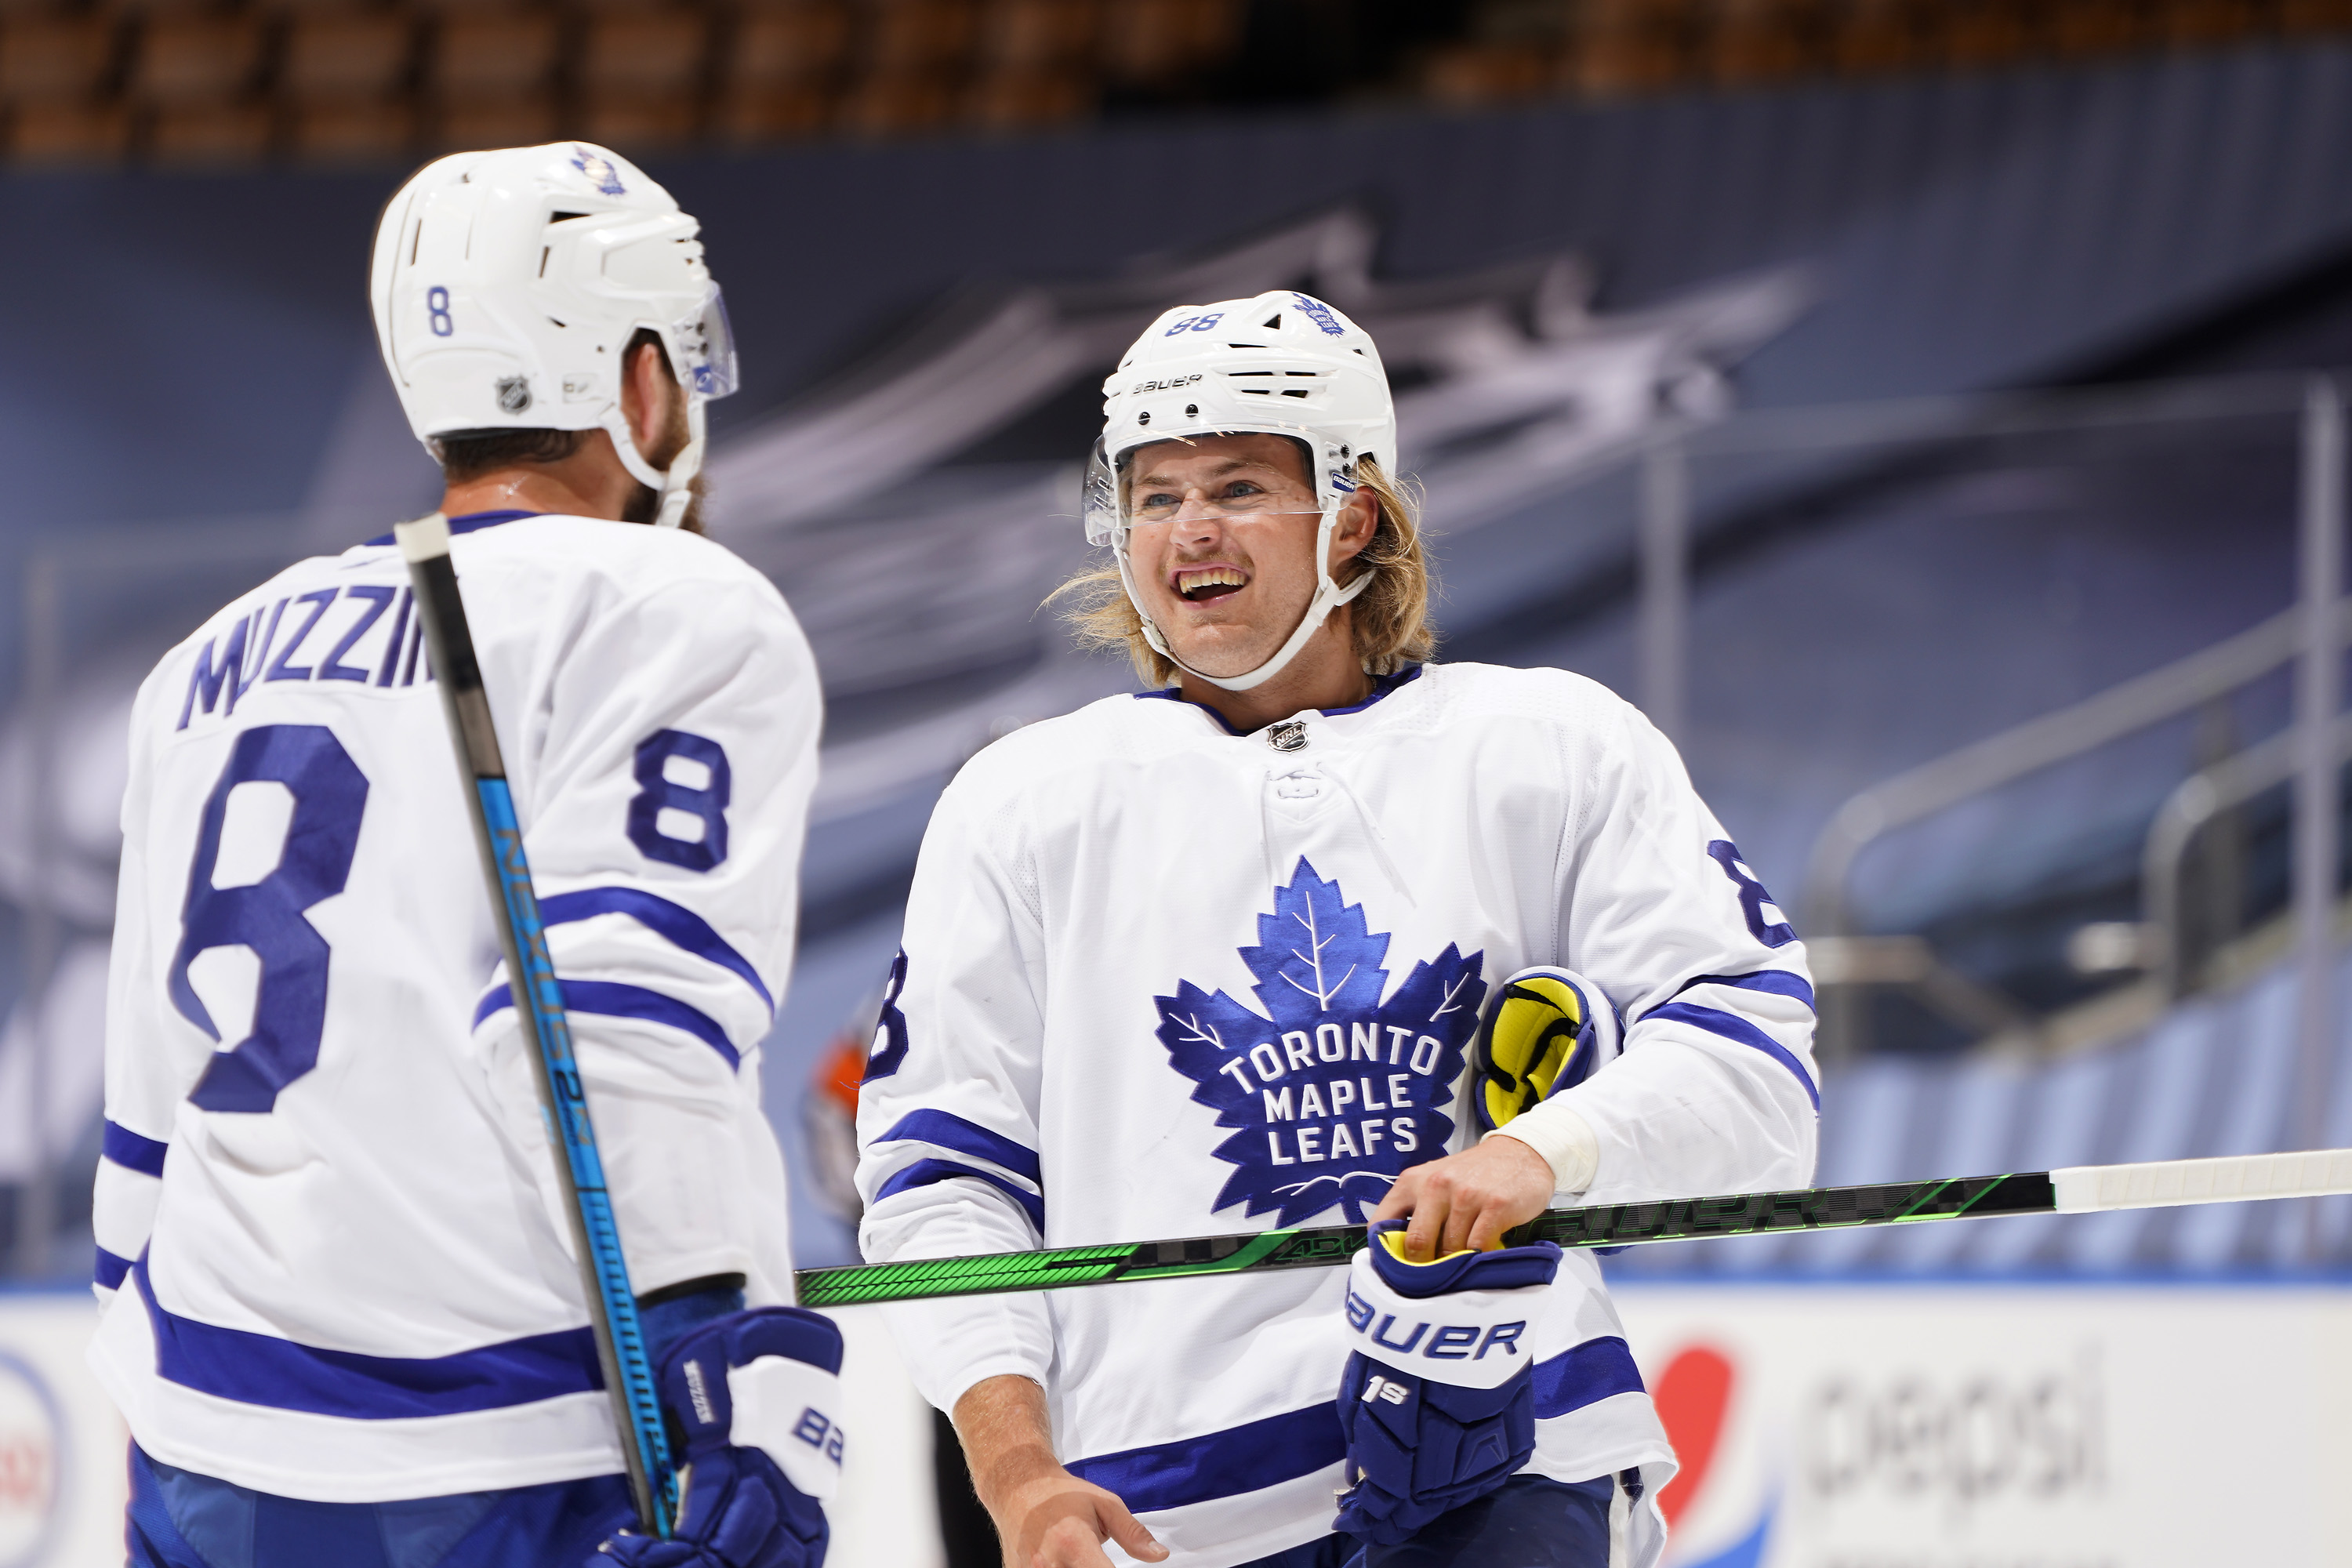 TORONTO, ONTARIO - JULY 28: William Nylander #88 and Jake Muzzin #8 of the Toronto Maple Leafs talk on the ice during the first period of an exhibition game against the Montreal Canadiens prior to the 2020 NHL Stanley Cup Playoffs at Scotiabank Arena on July 28, 2020 in Toronto, Ontario.